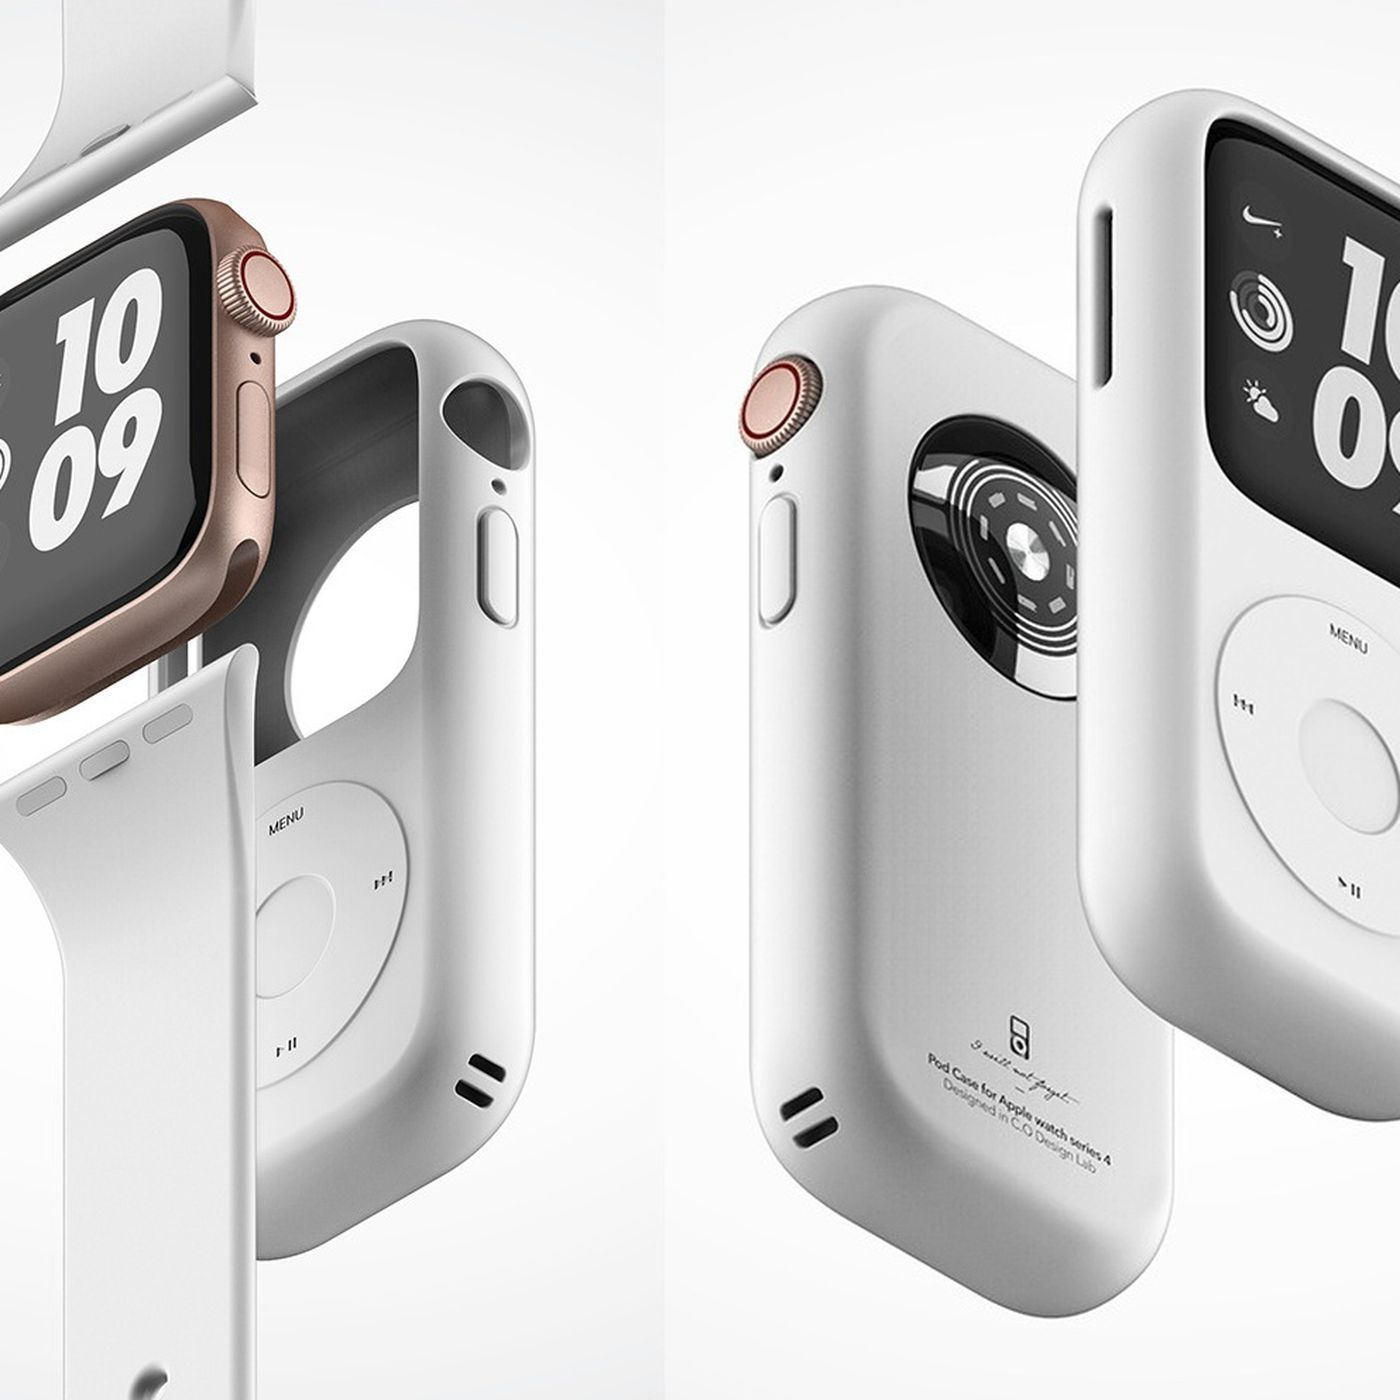 4f2bd6894c5 We've come full circle with this Apple Watch iPod nano concept - The ...